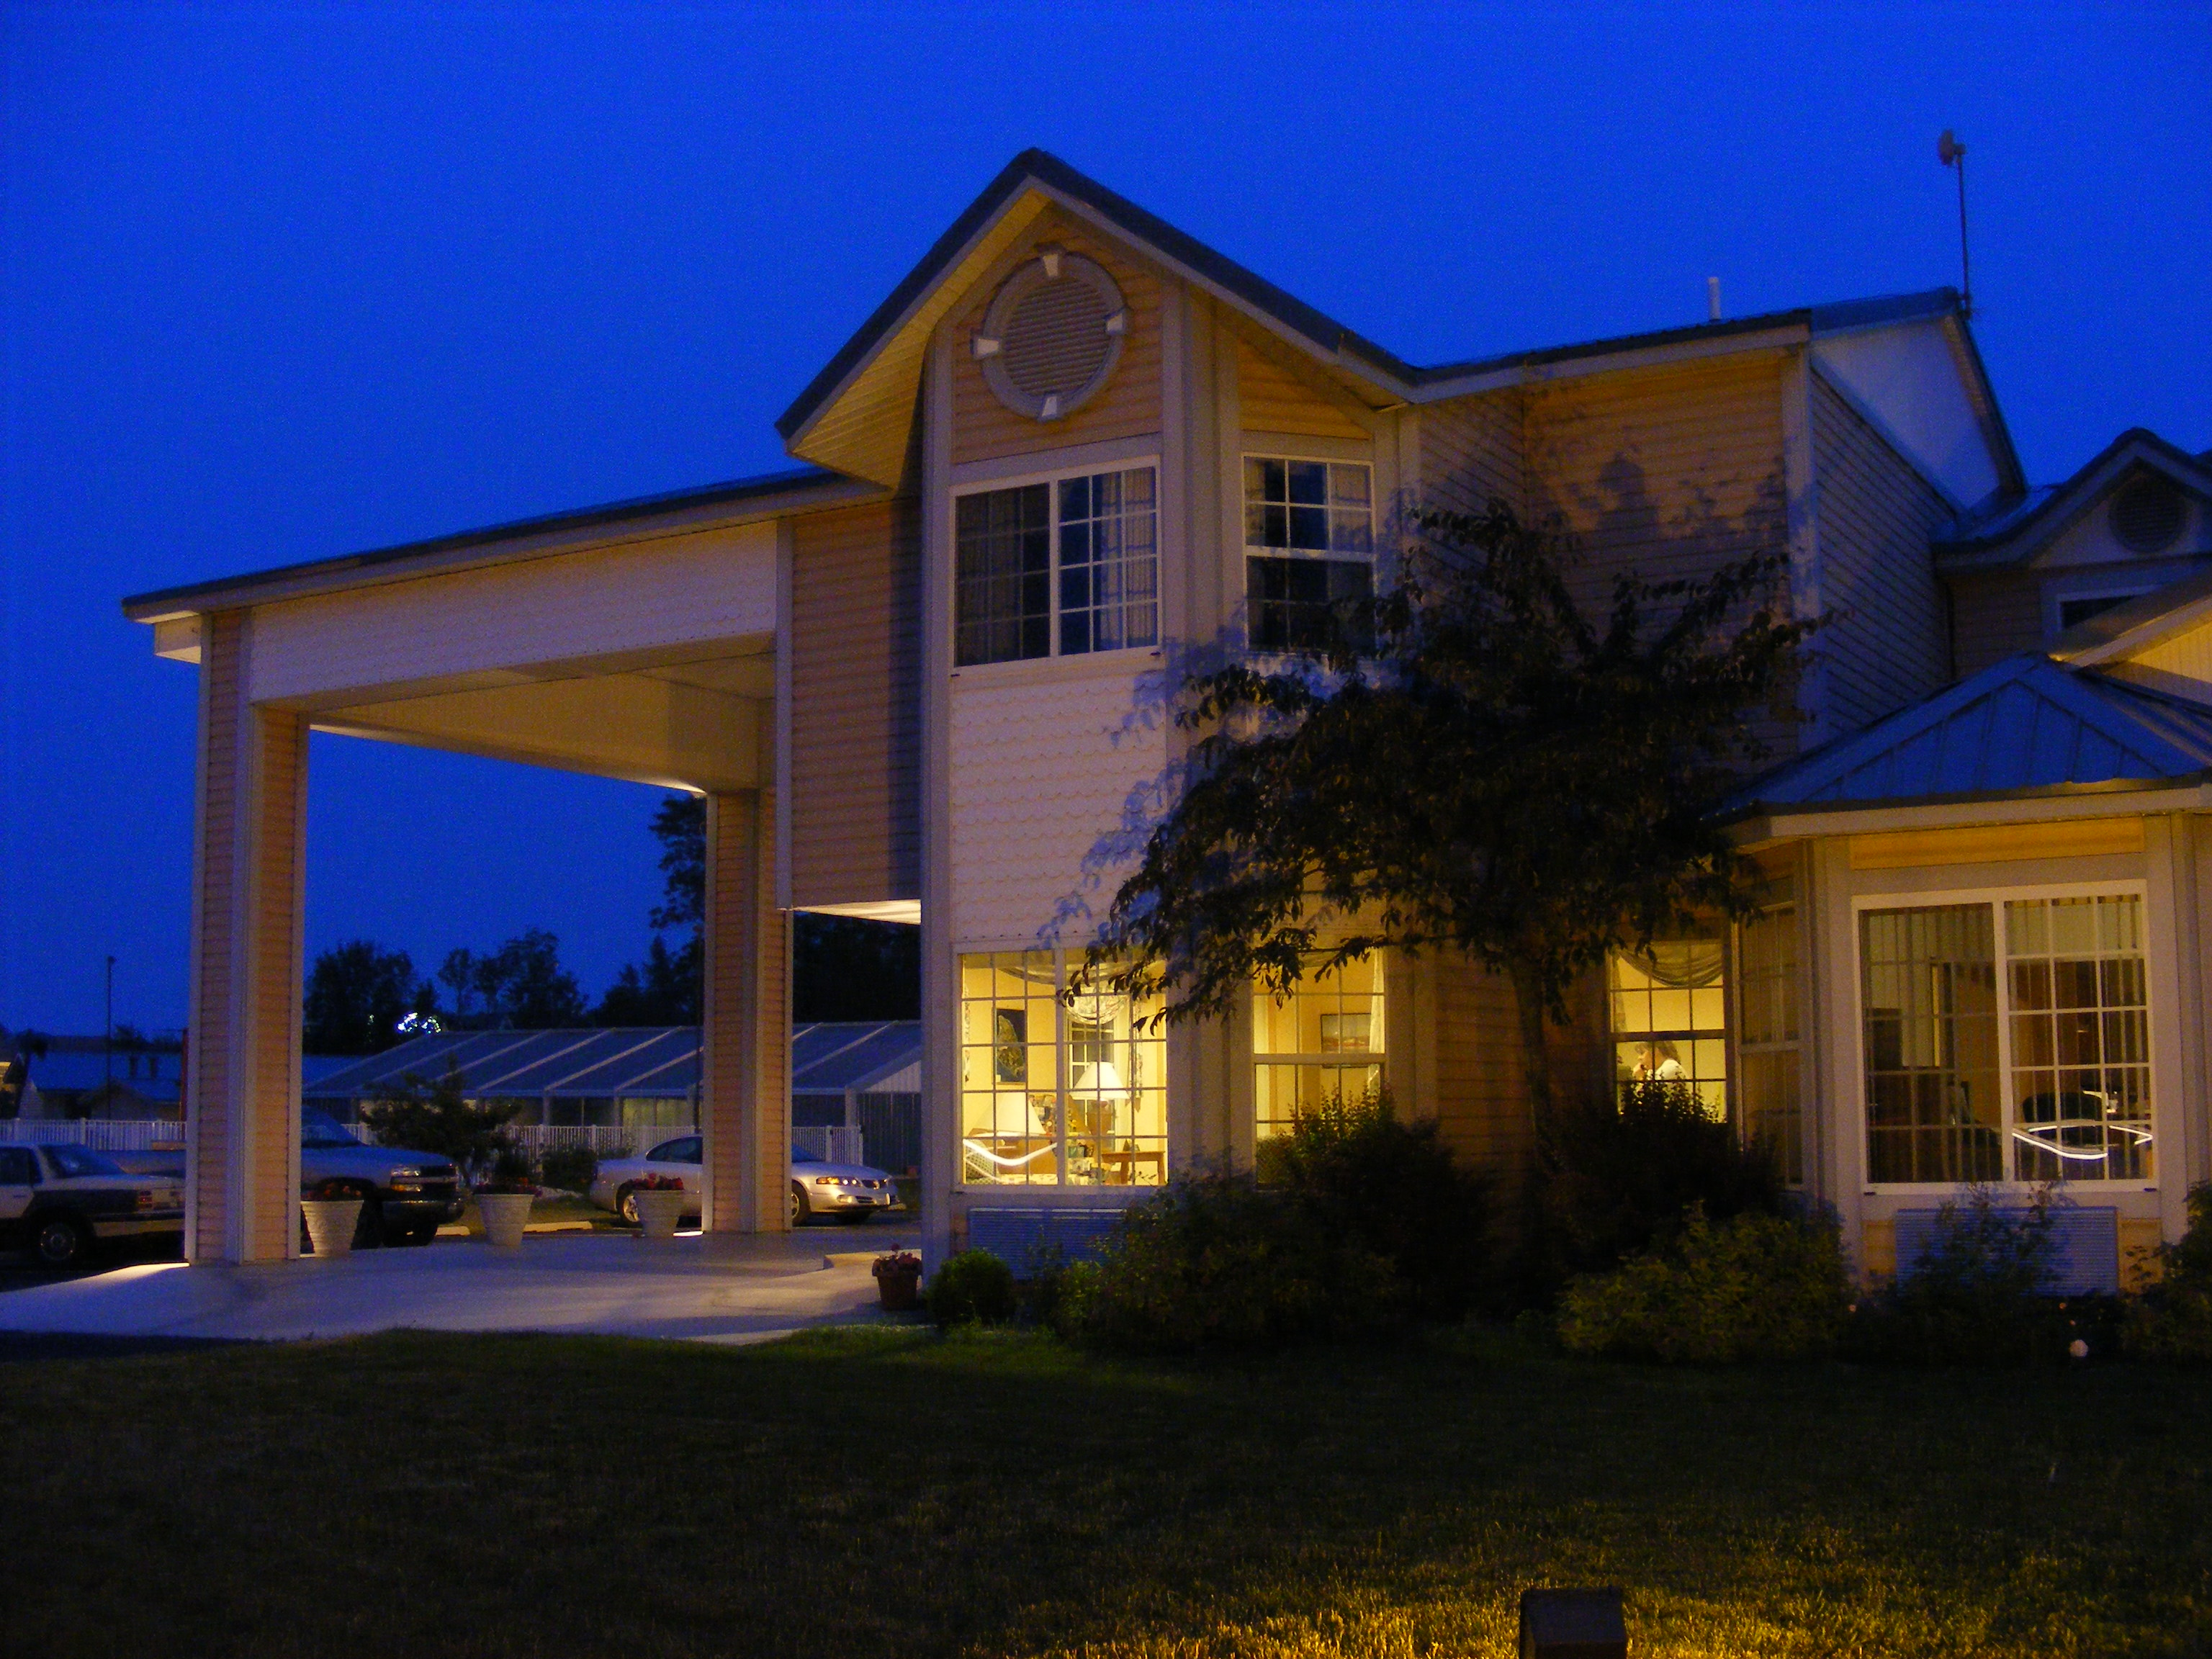 Great Lakes Inn Front at Night